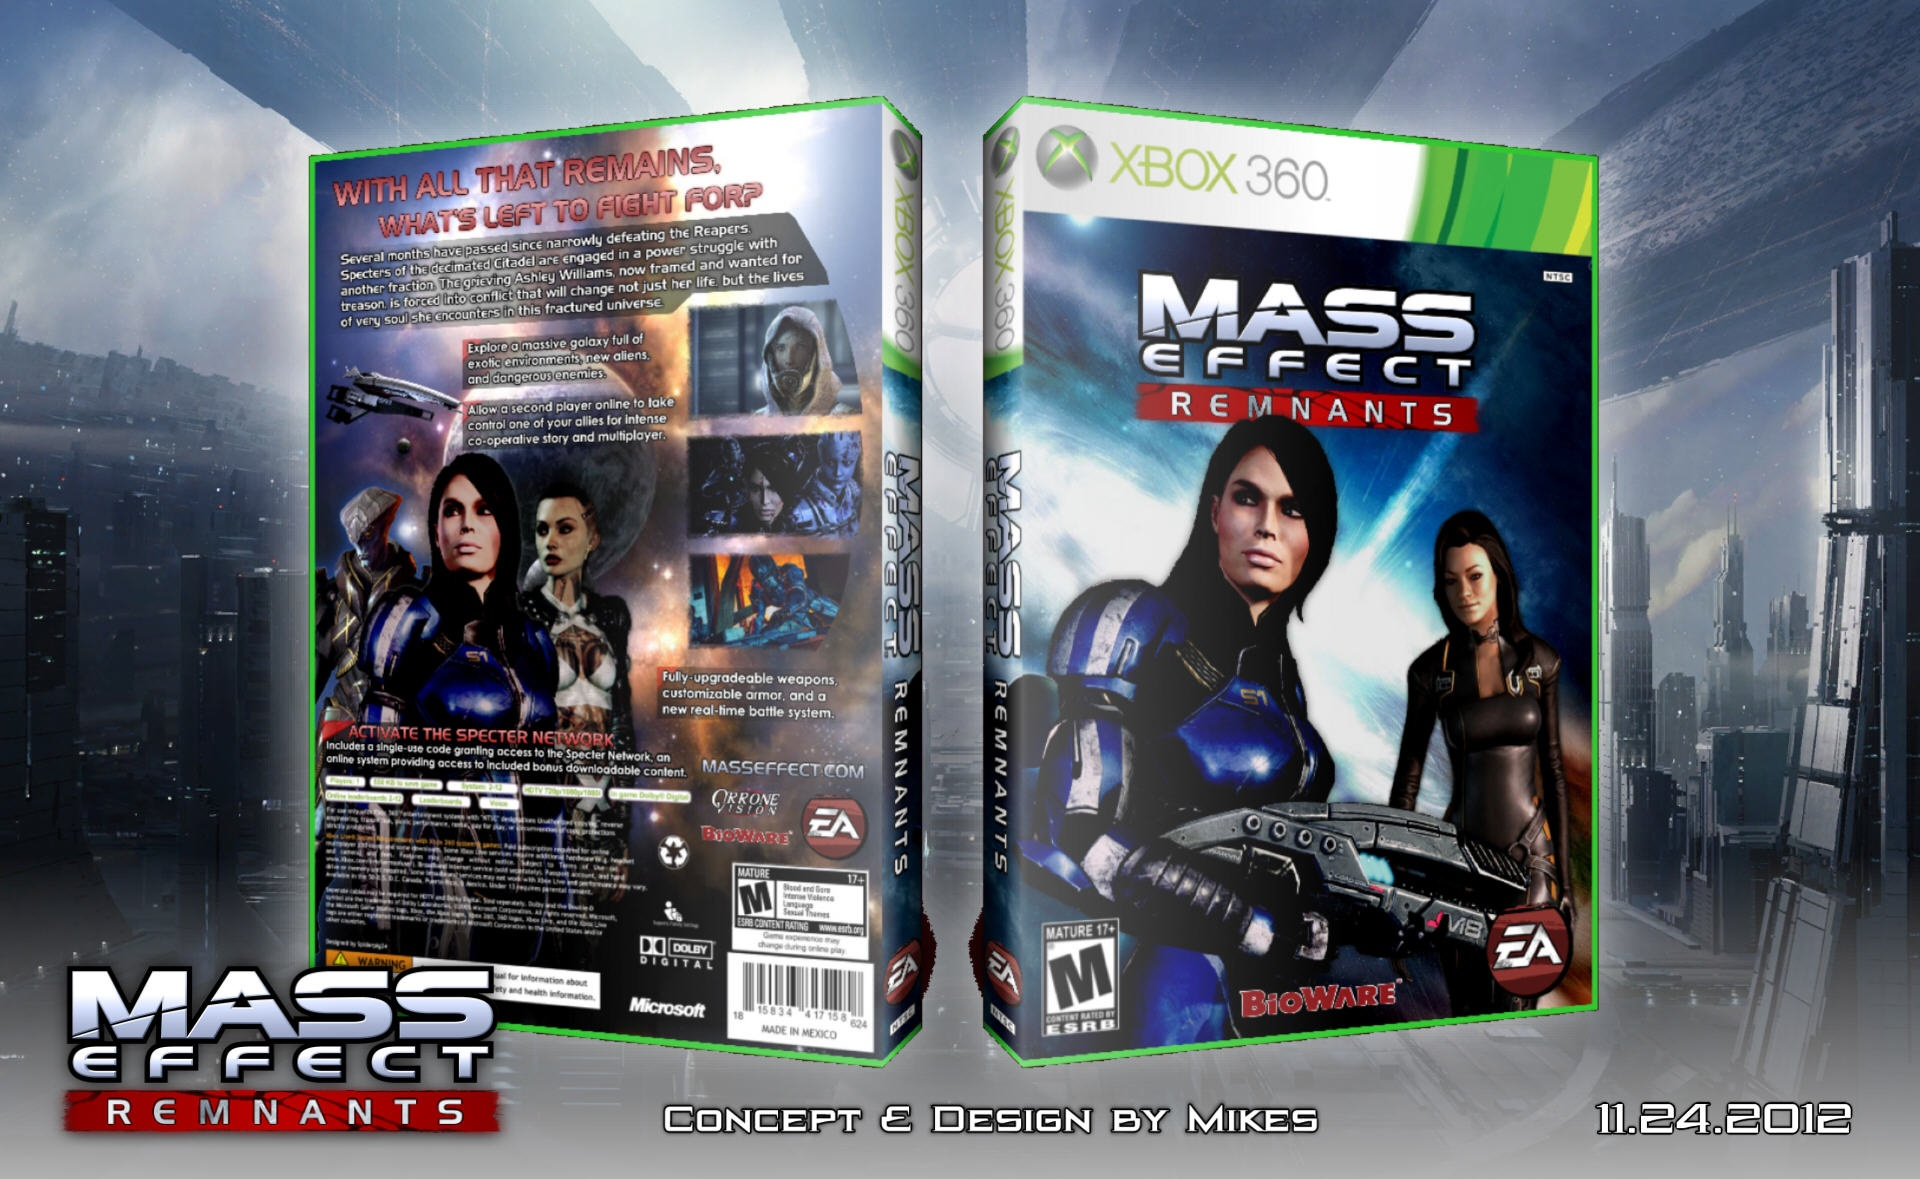 Mass Effect Remnants box cover